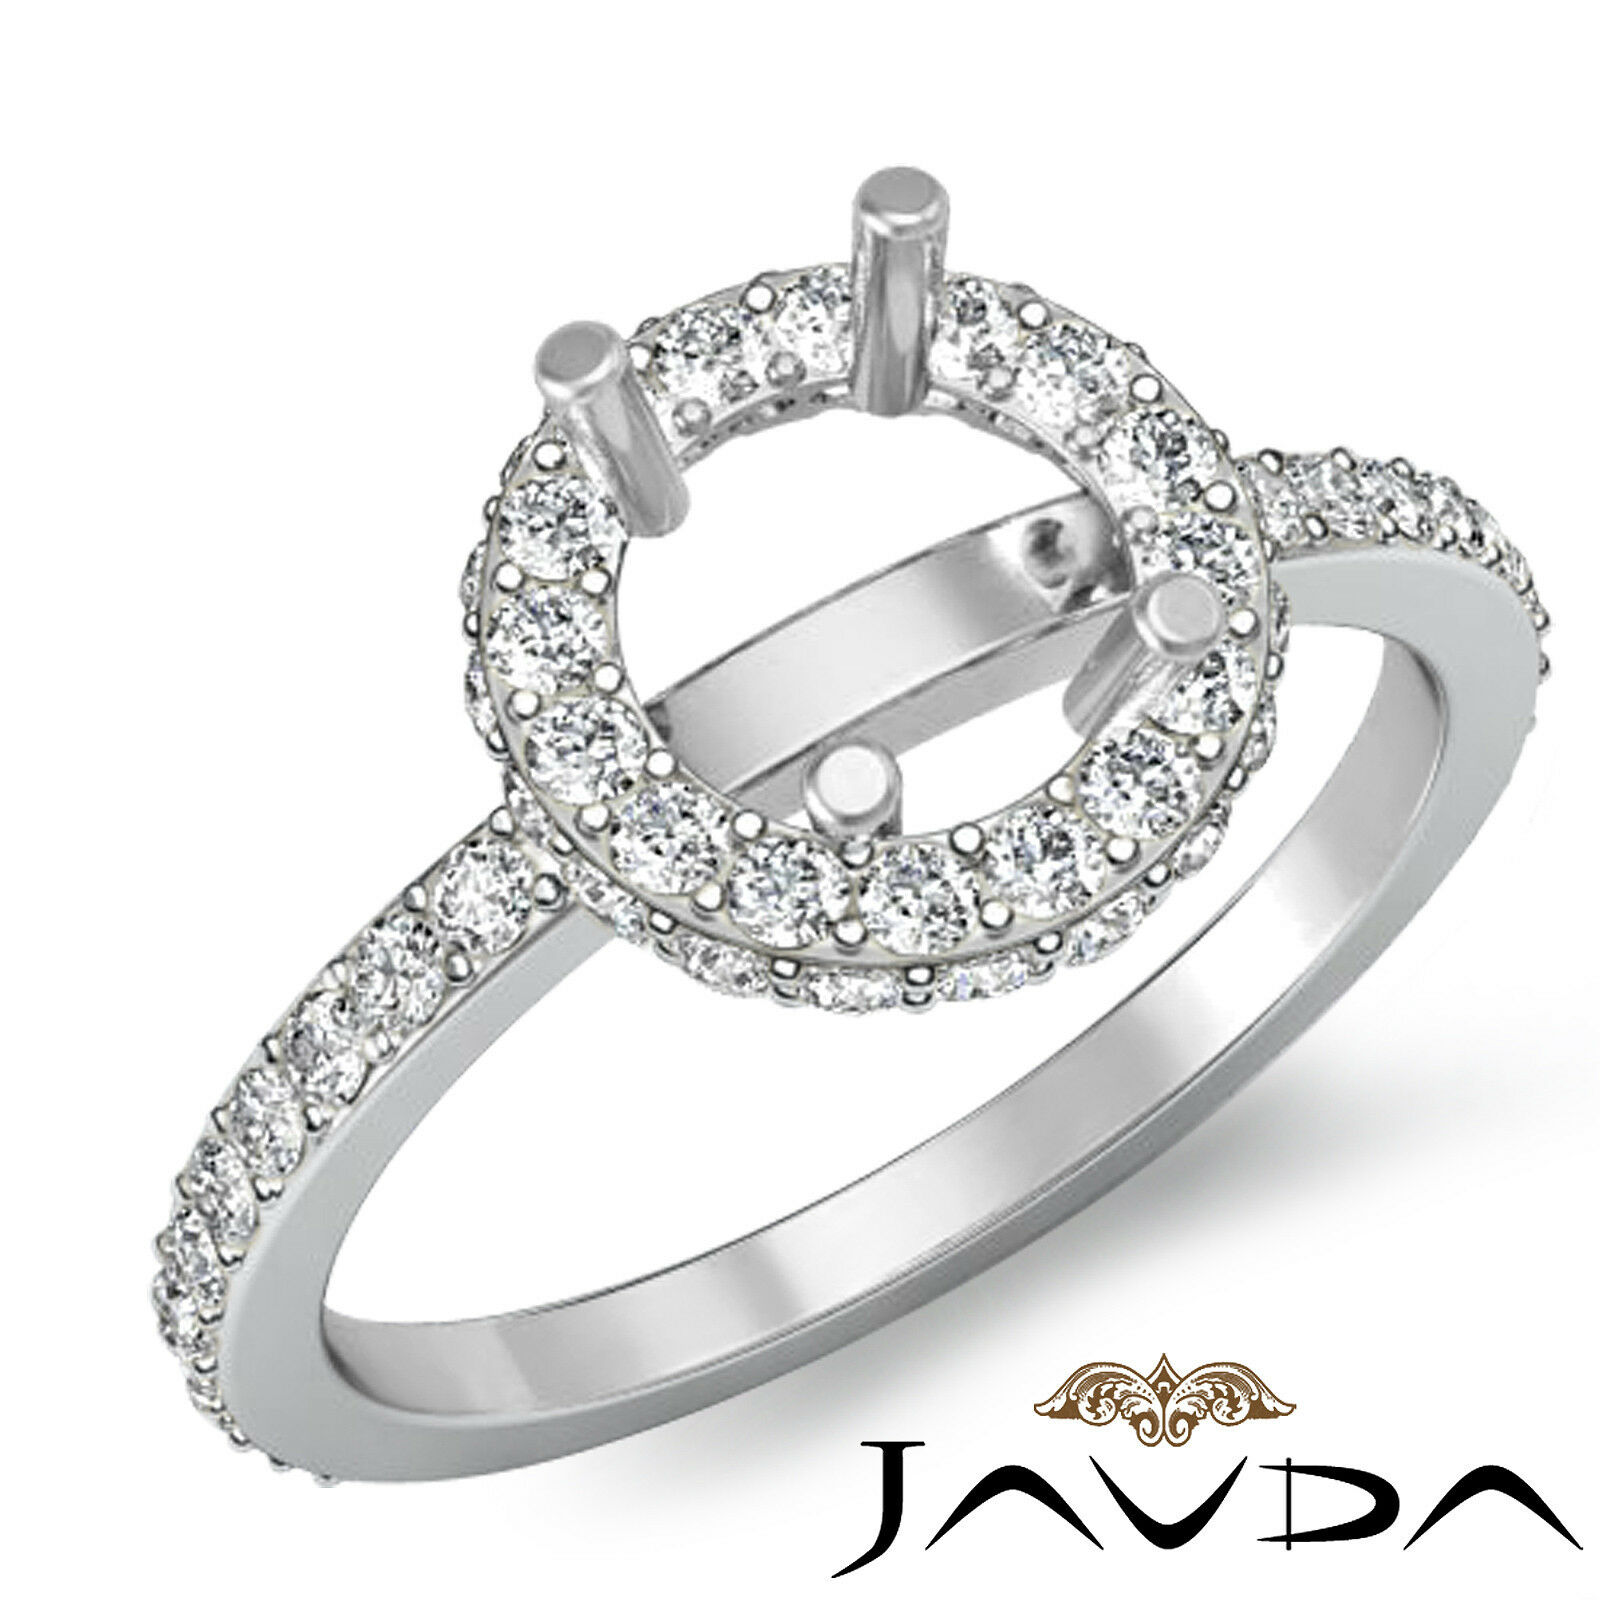 Unique Pave Diamond Engagement Proposed Ring 14k W gold Round Semi Mount 0.85Ct